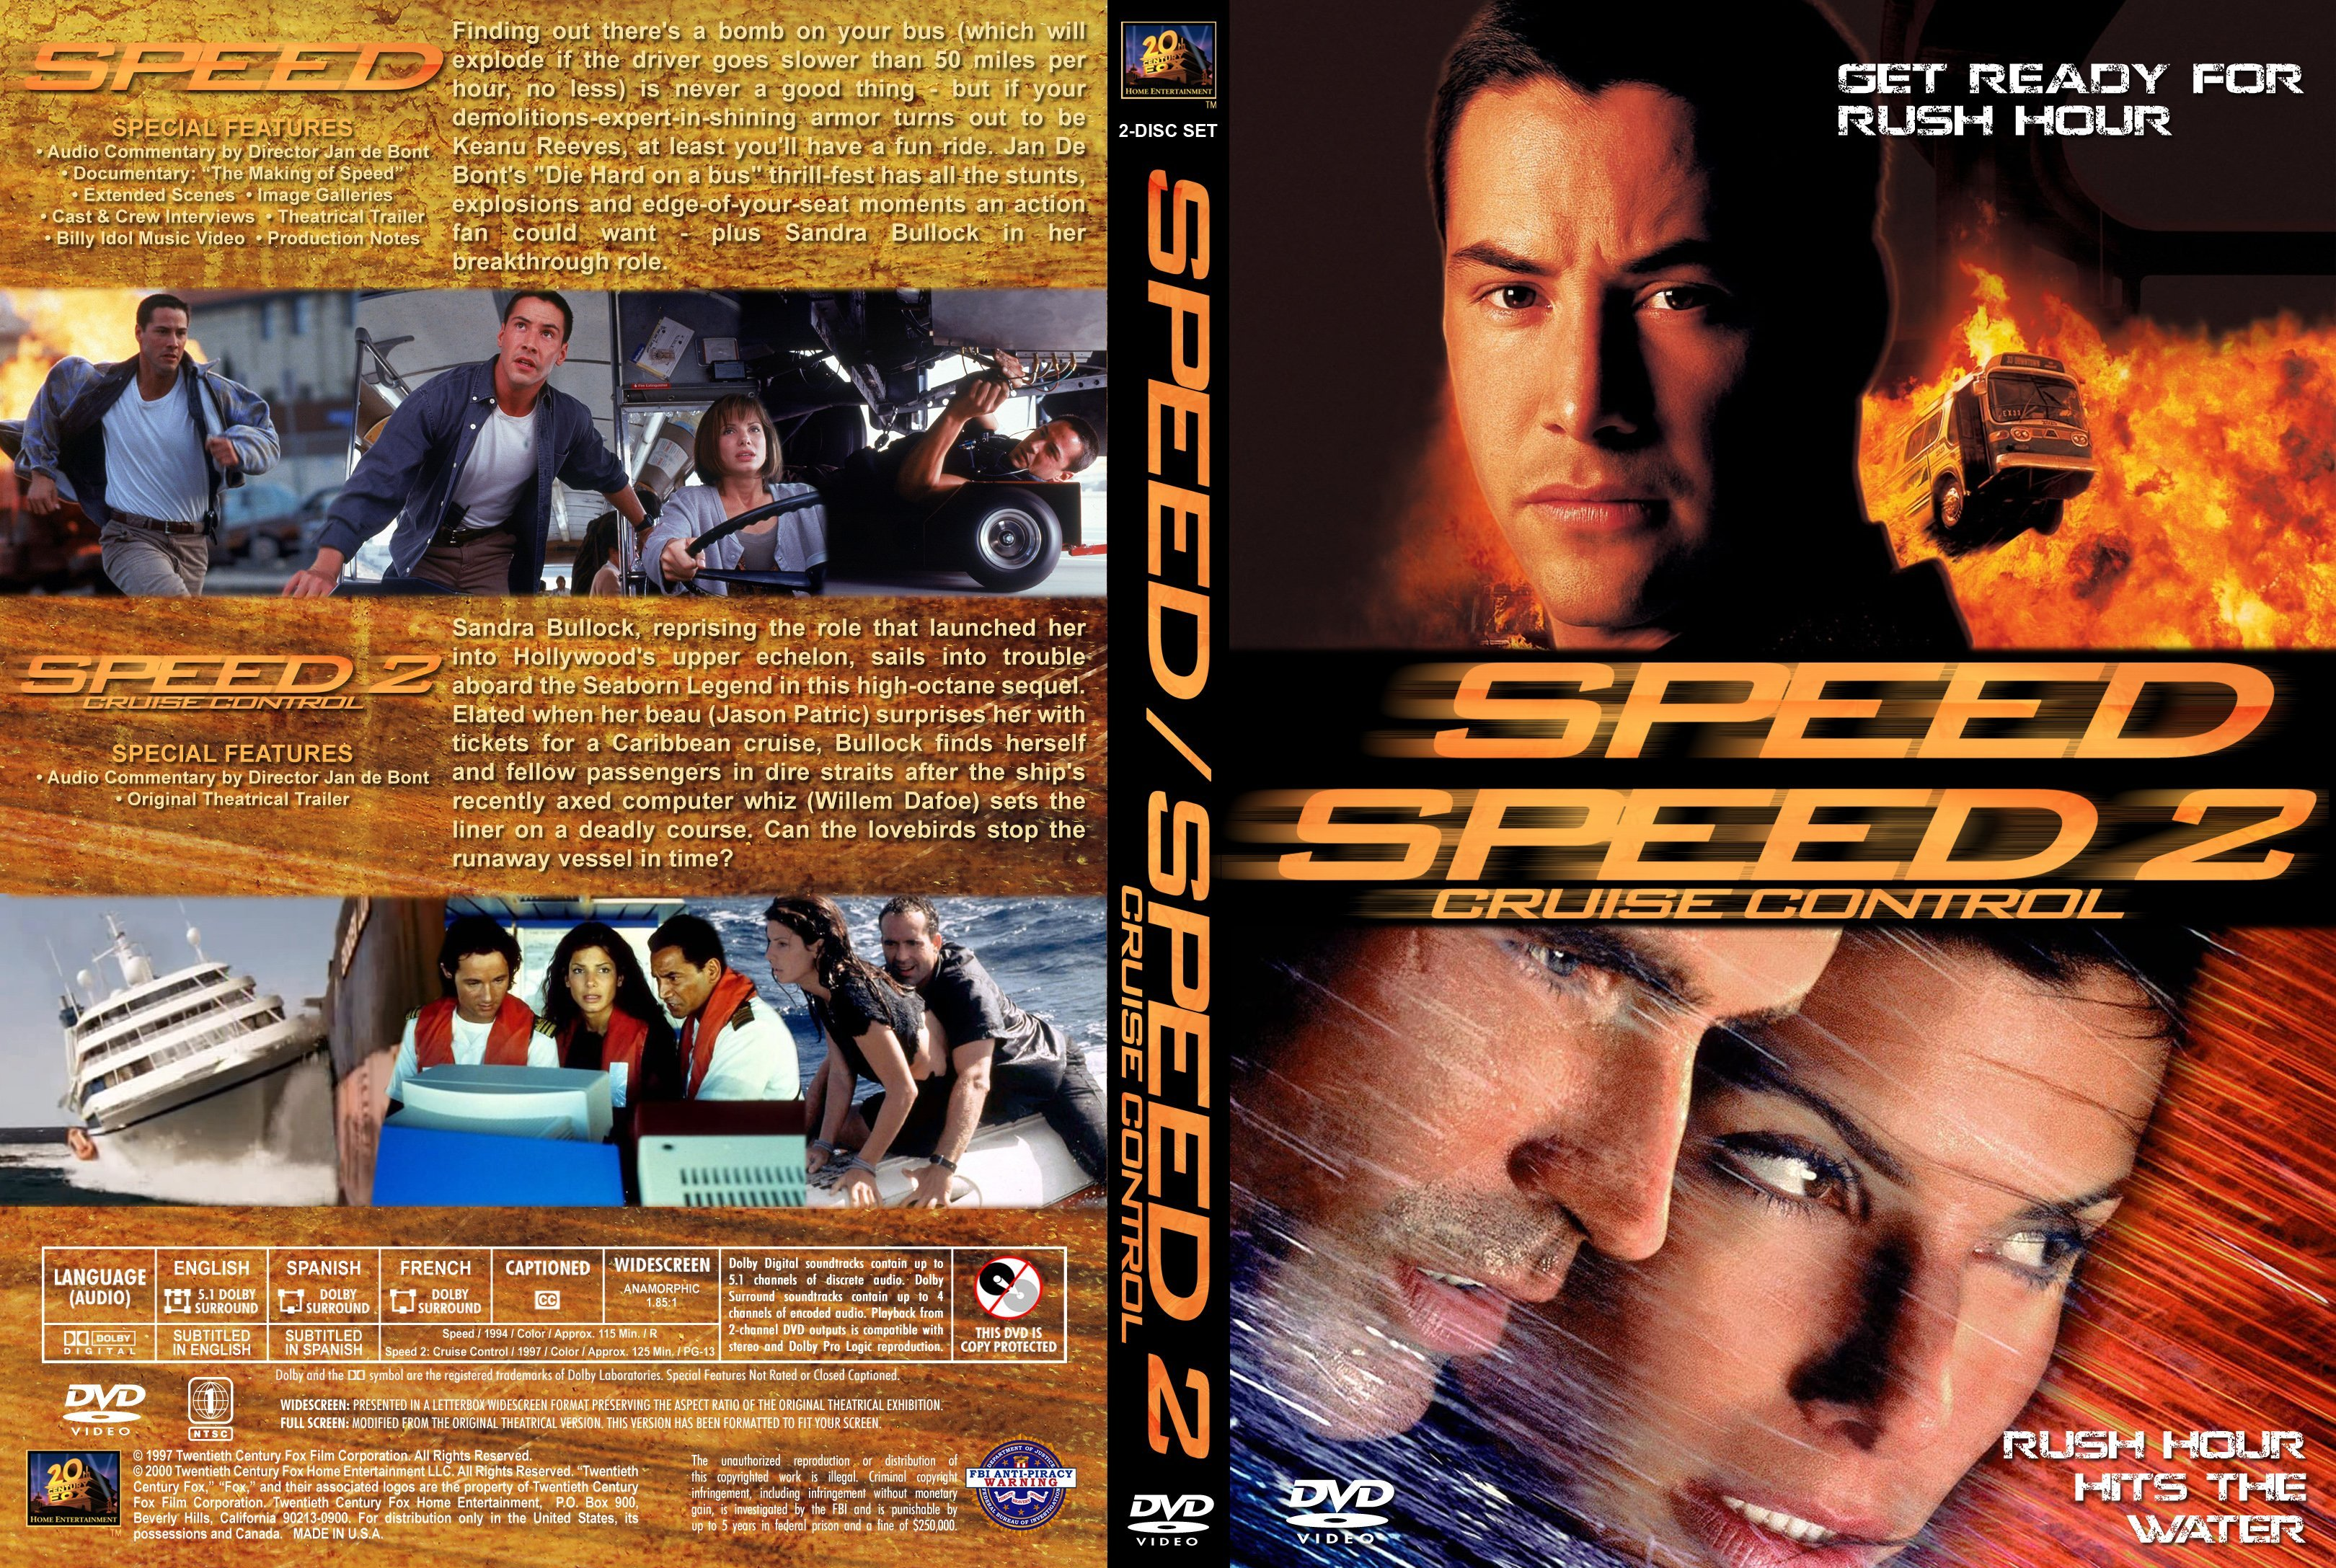 speed dating cast and crew